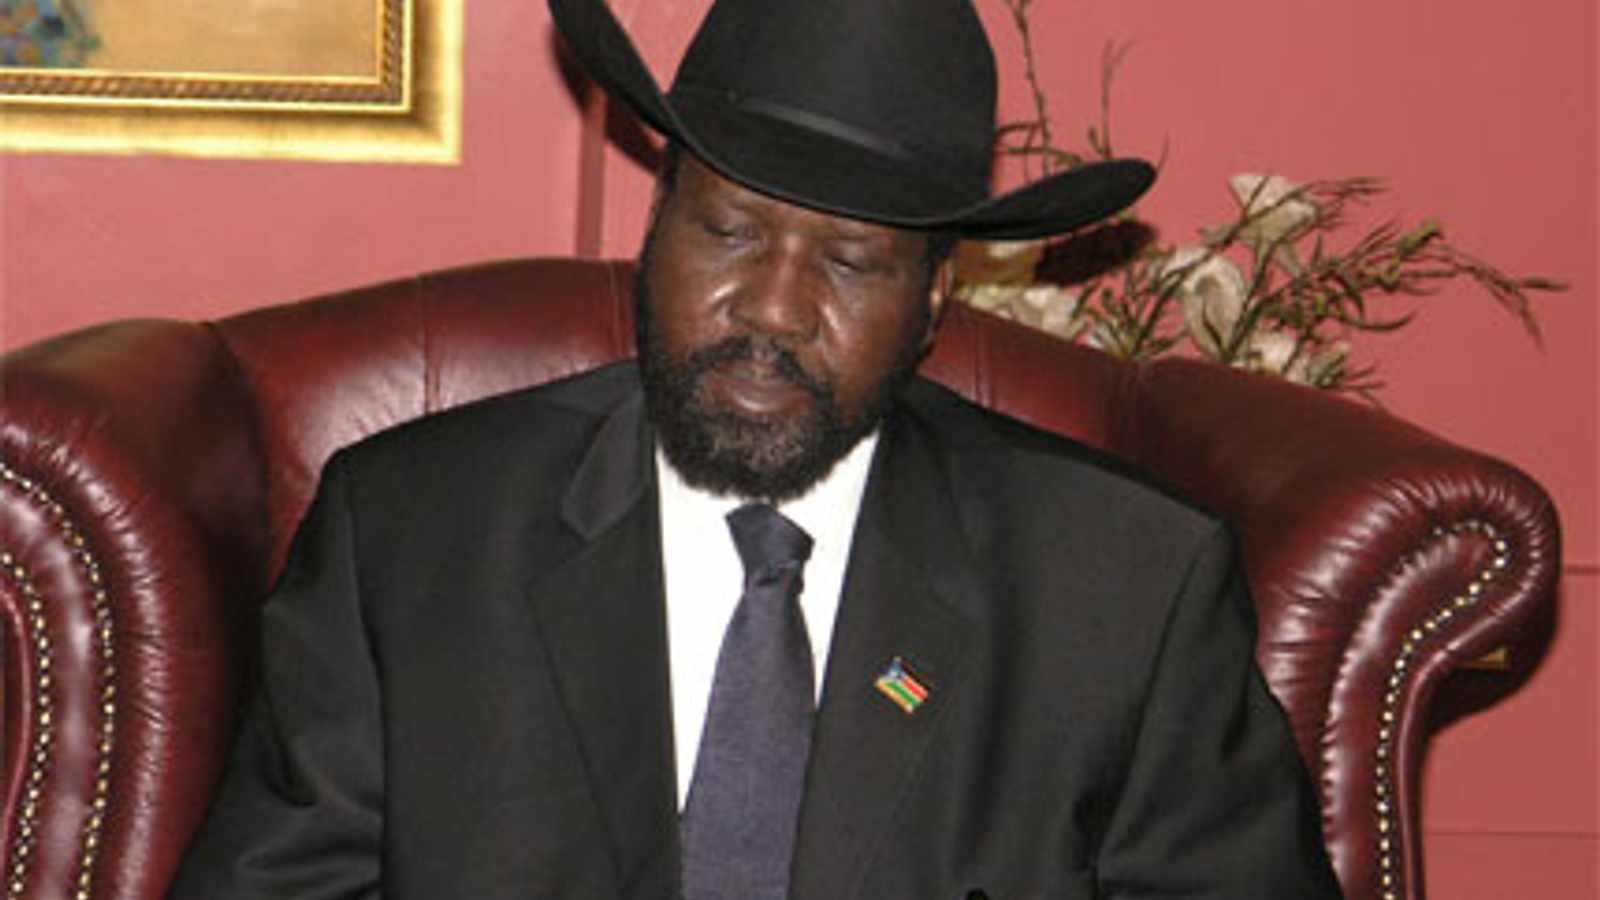 Violence against South Sudanese females among the highest globally